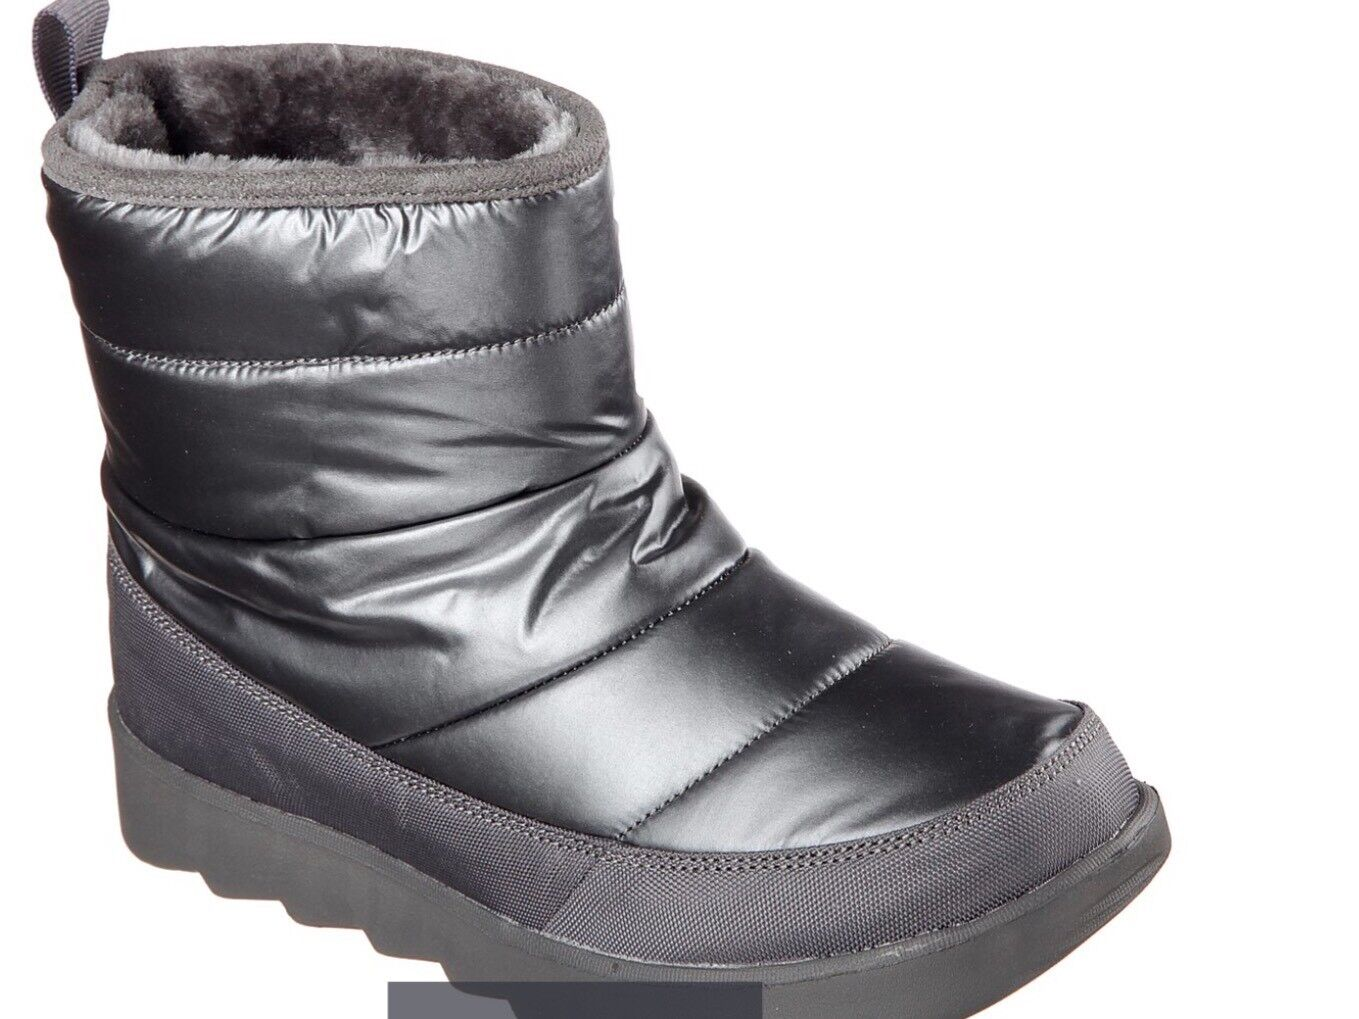 Skechers Mementos Angel Face Winter Boots SZ. 6 Bobs For Dogs Charcoal NEW